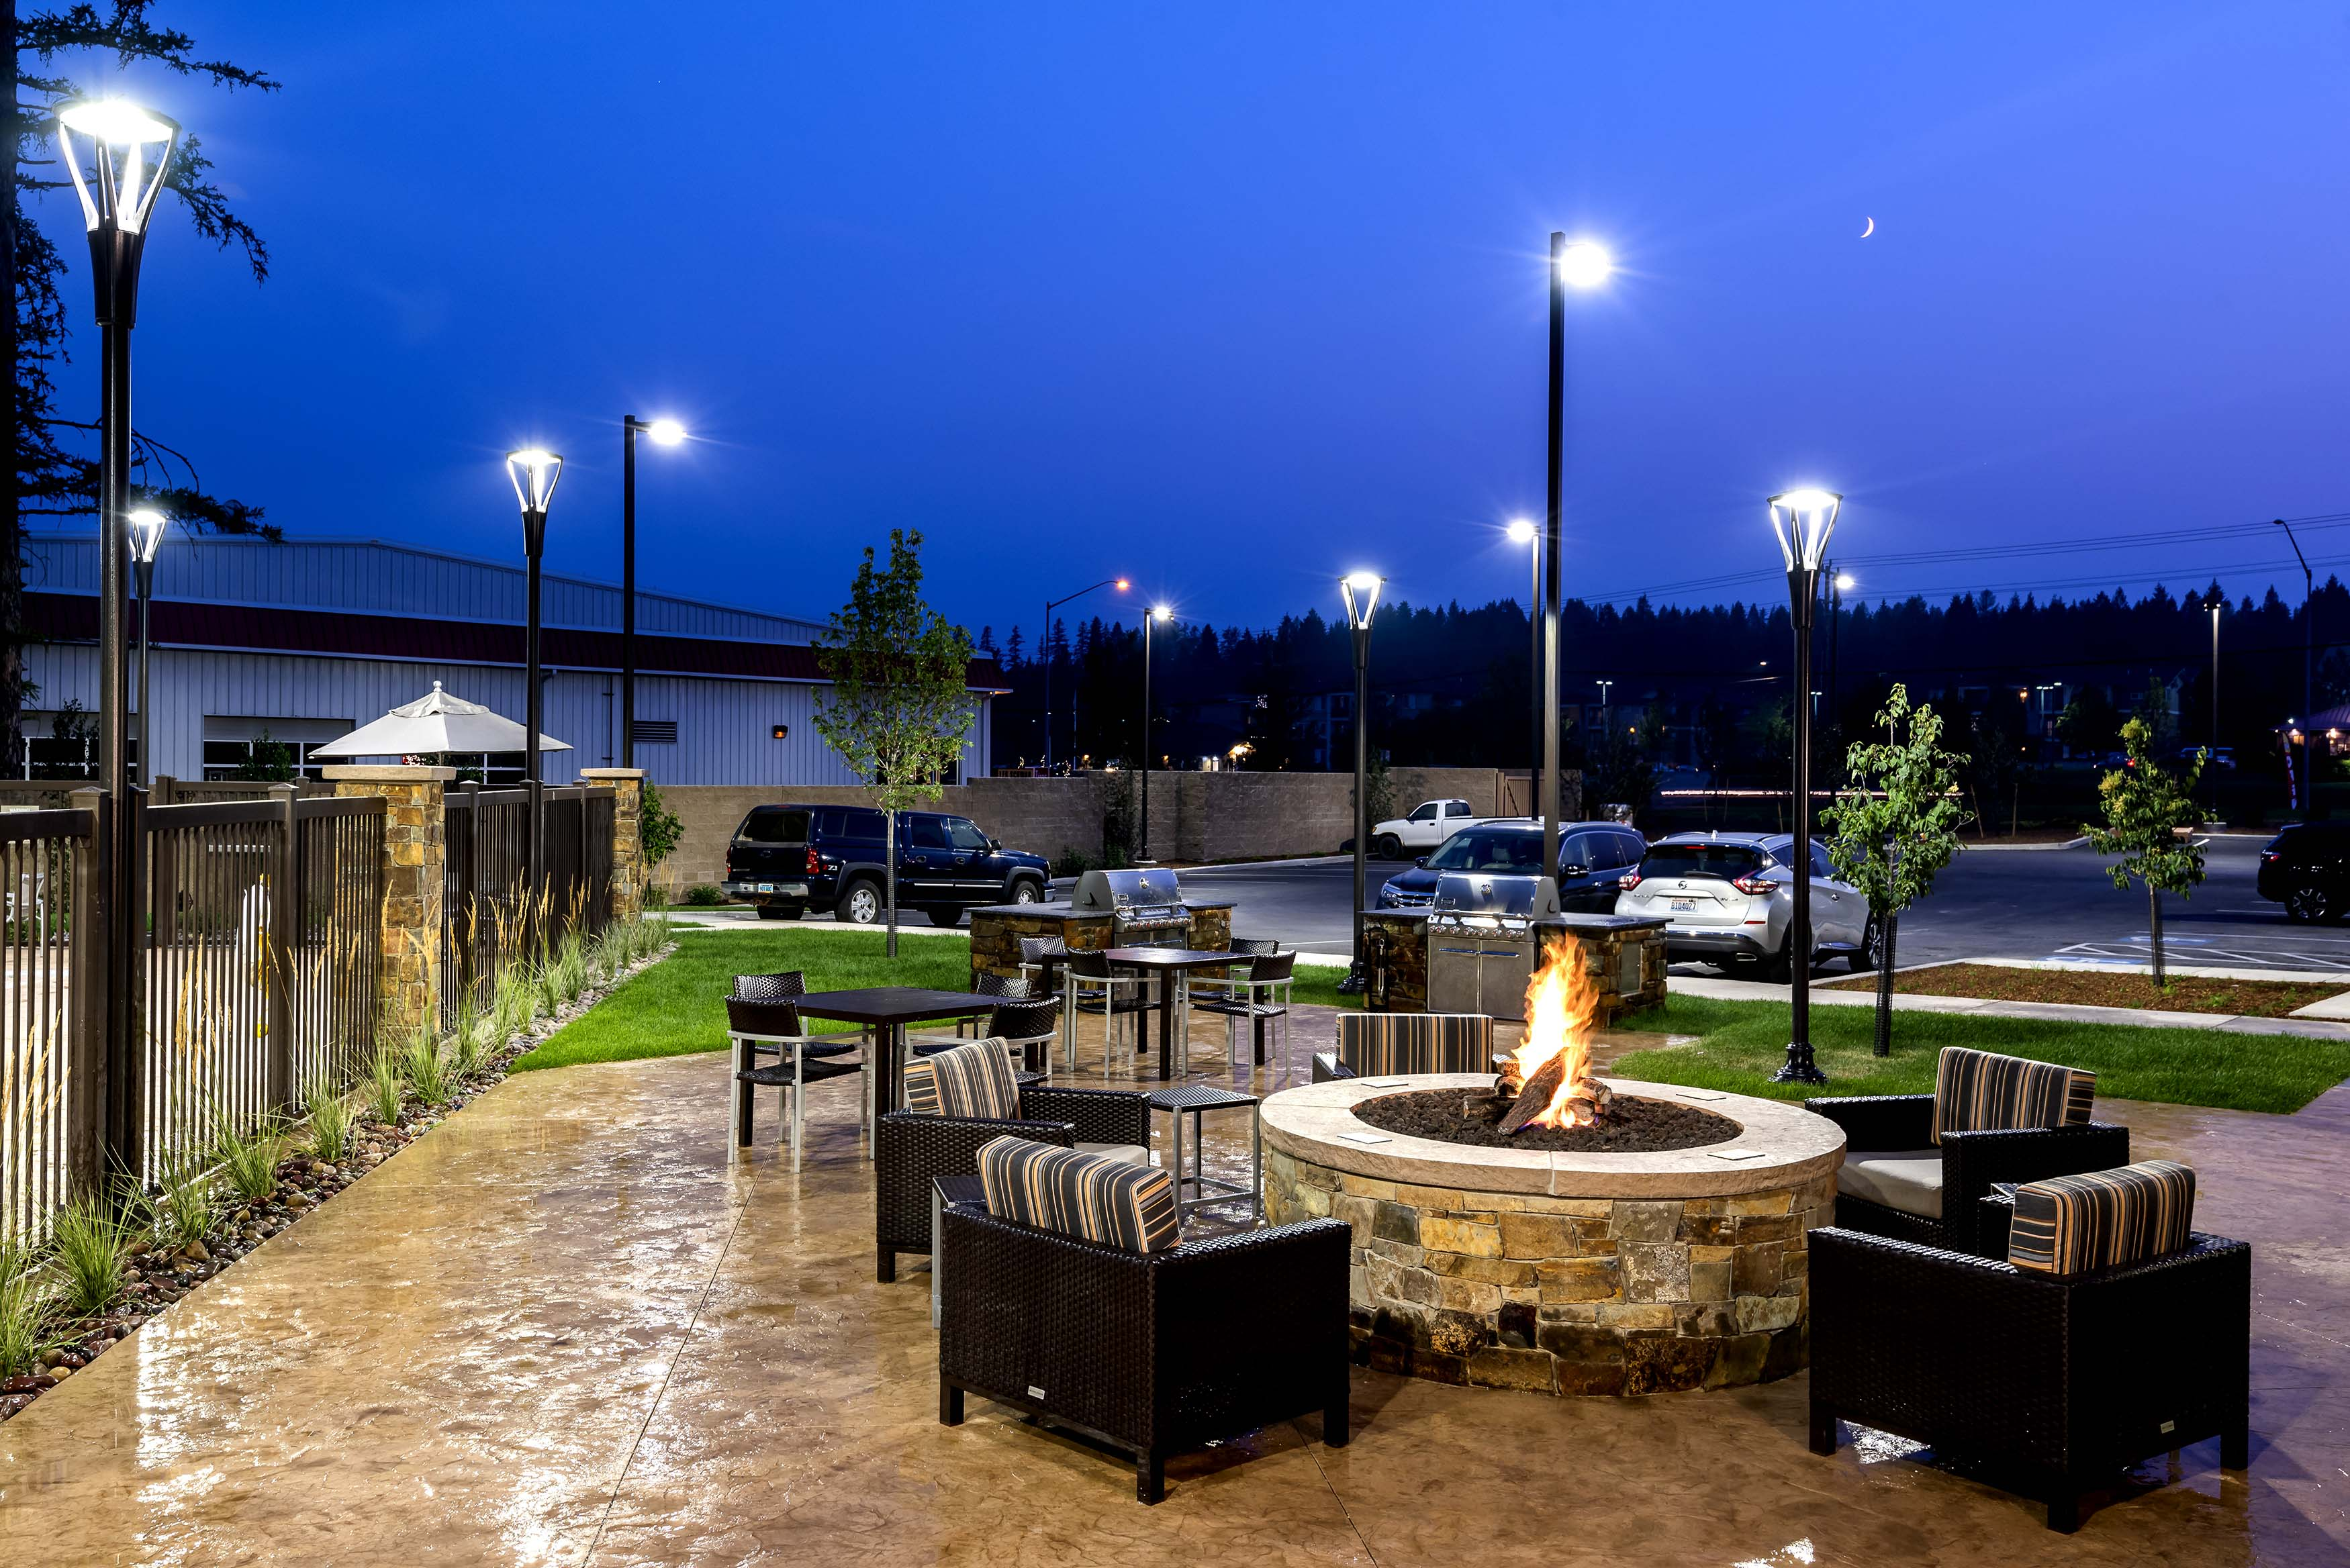 Towne-place-suite-marriott-hotels-towneplace-hotel-whitefish-montana-Fireplace-grill